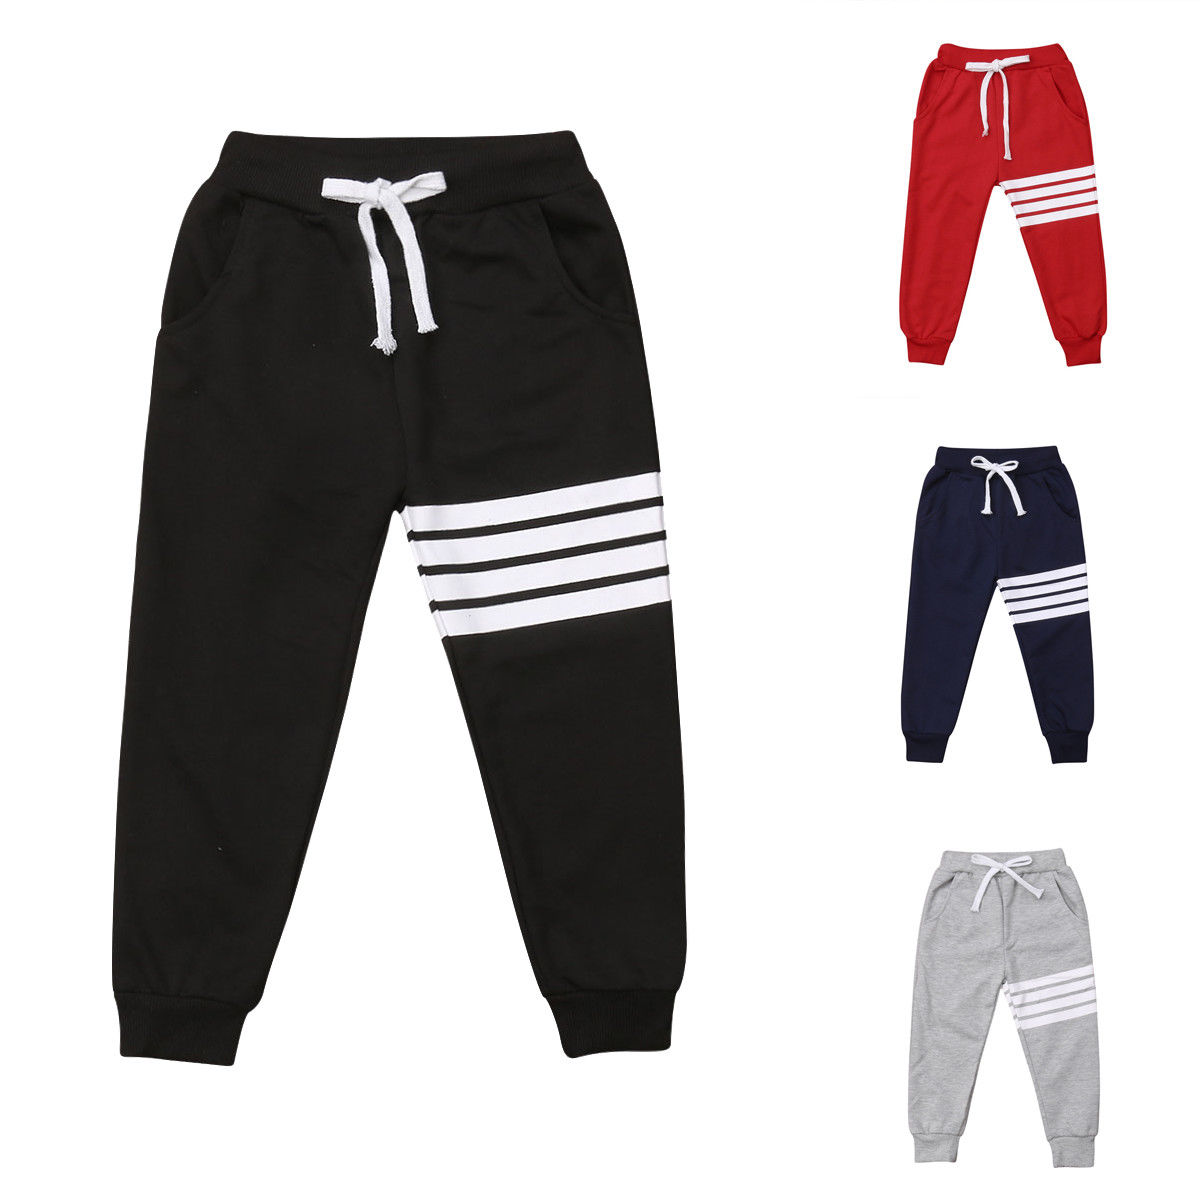 STONEBRIDGE Mens Boys Unisex Tracksuit Bottom with 2 Stripes Elasticated Waist Sport Trousers Pants